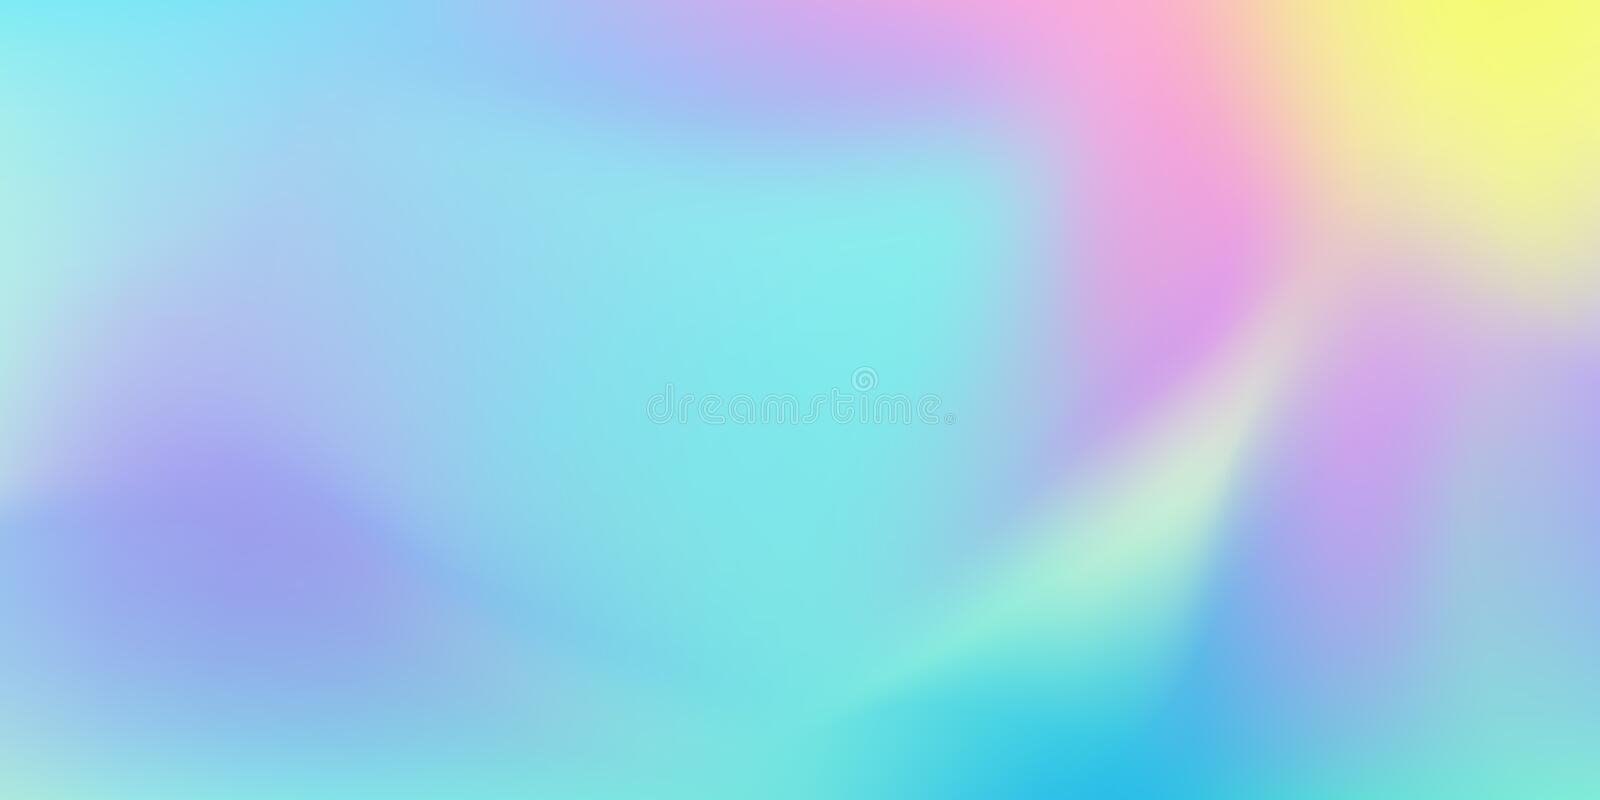 Iridescent color blend background, abstract liquid pattern. Vector holographic colors gradient blend background royalty free illustration